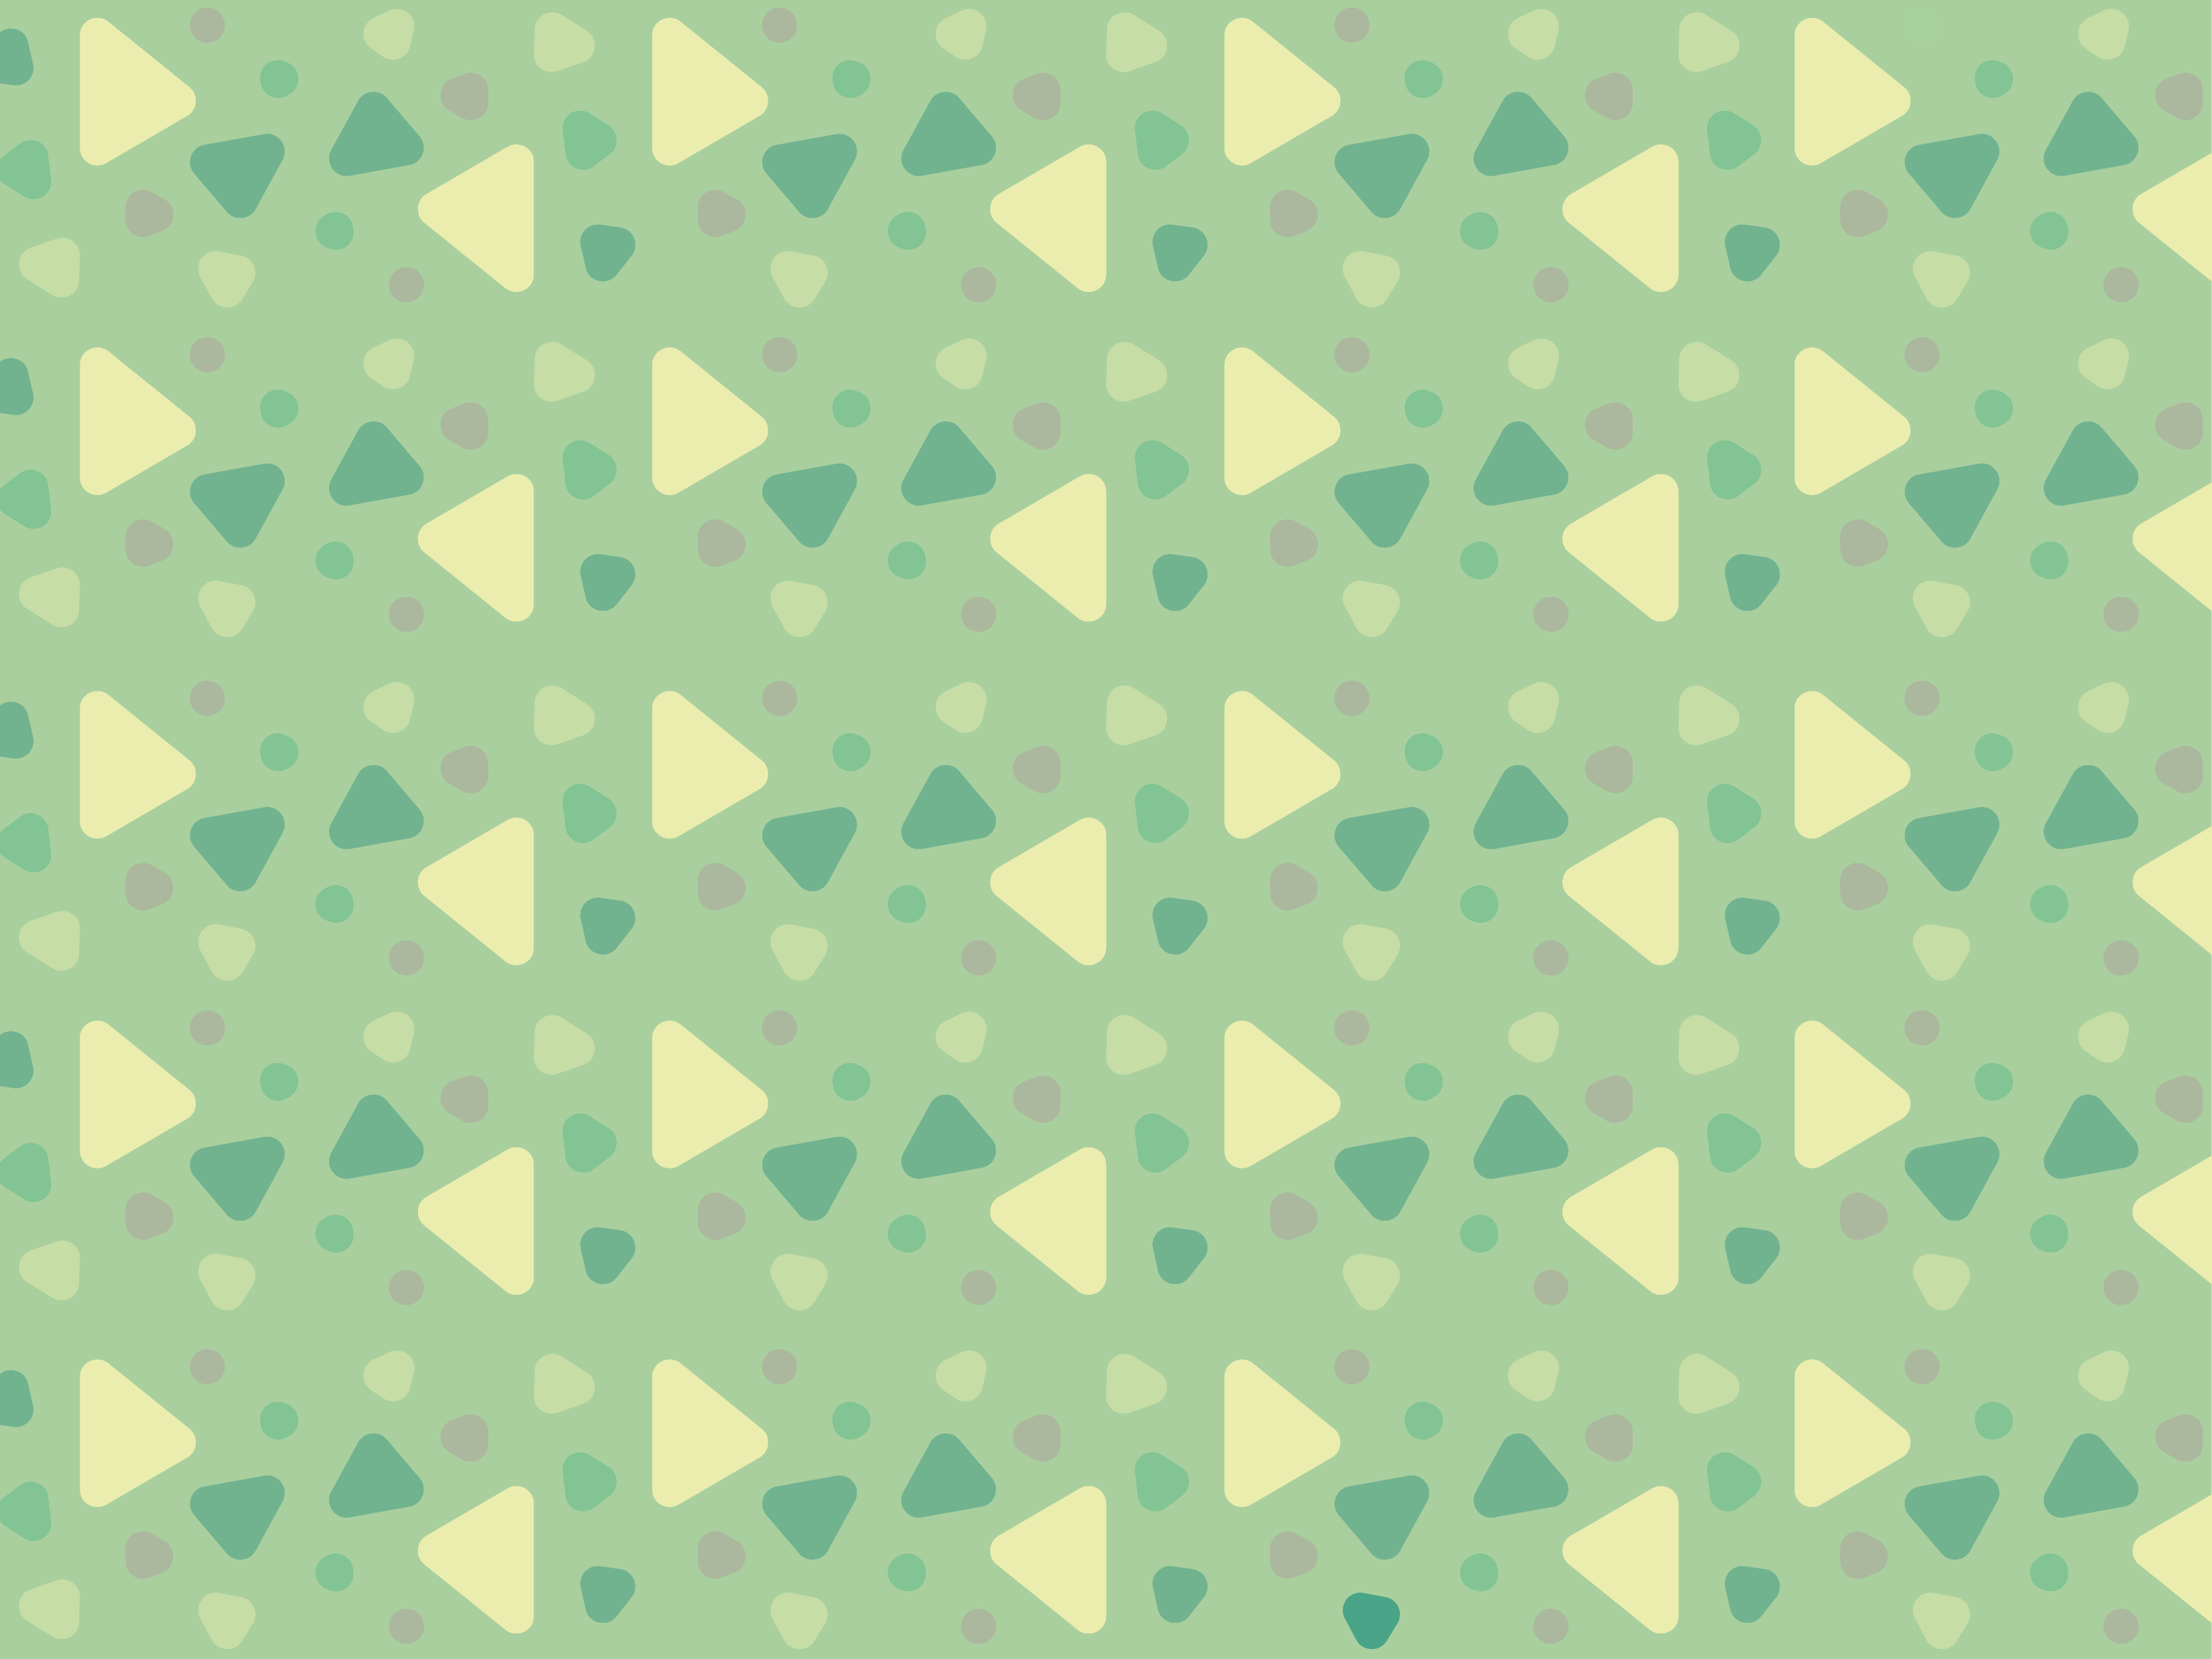 background animal crossing wallpaper designs